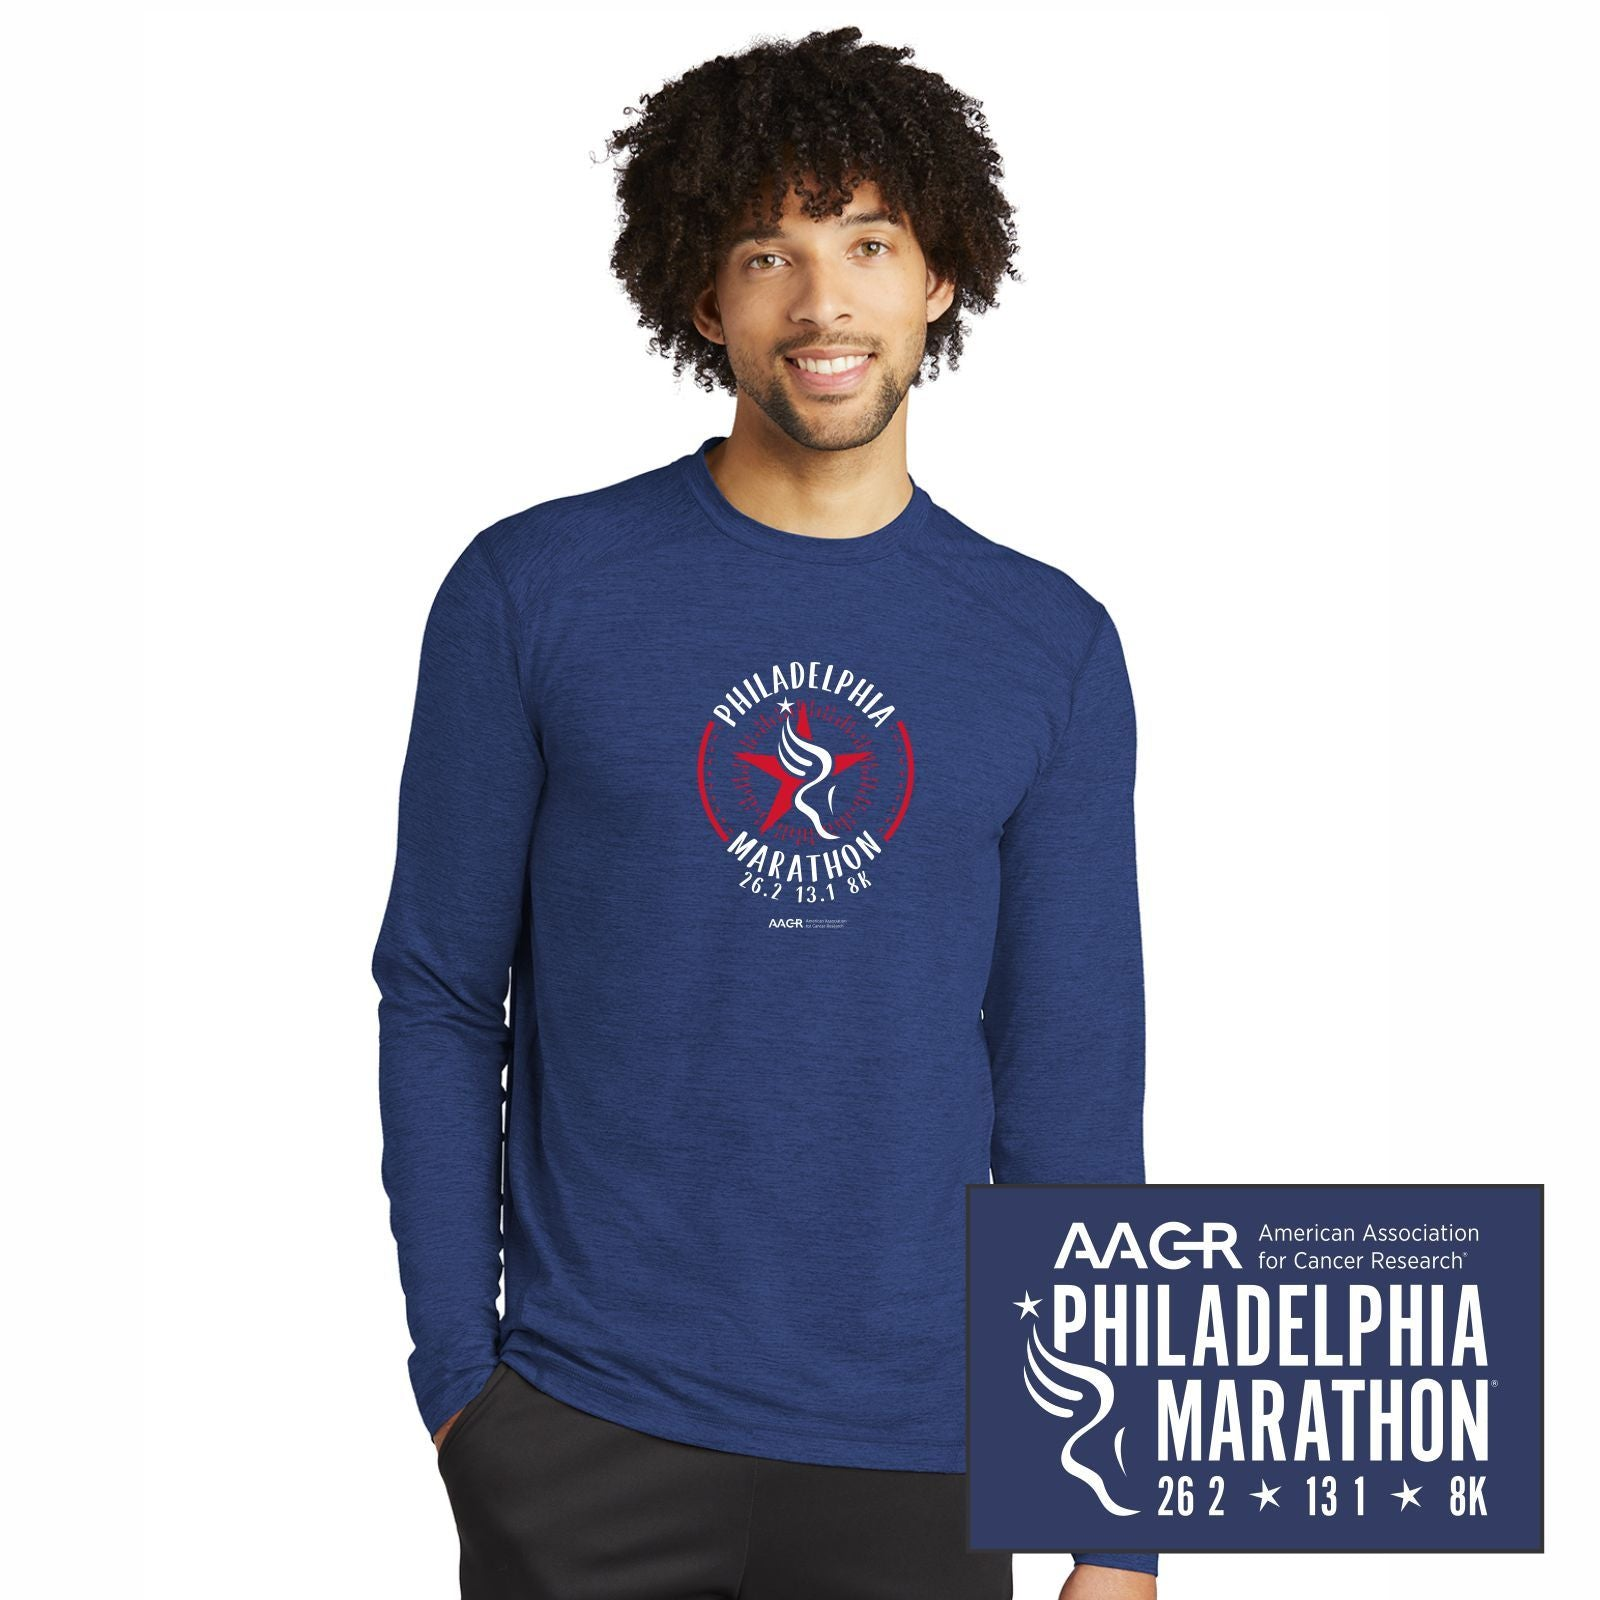 Men's LS Poly/Spandex Tee - True Royal Heather 'Round' Design - AACR Philadelphia Marathon